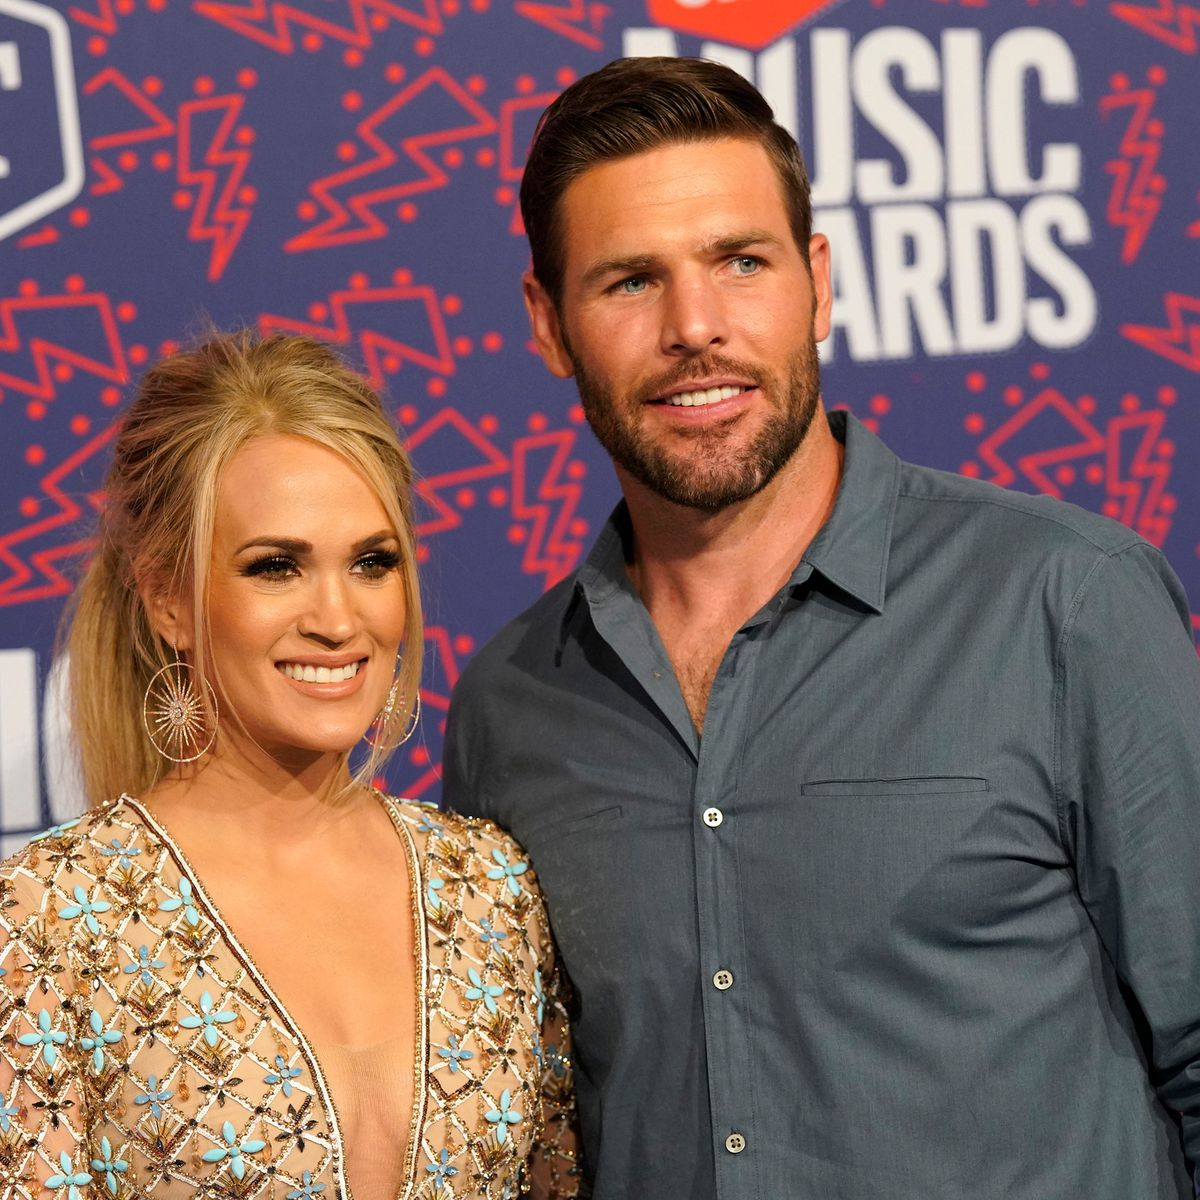 Carrie Underwood's baby loves her singing. Dad's, not so much